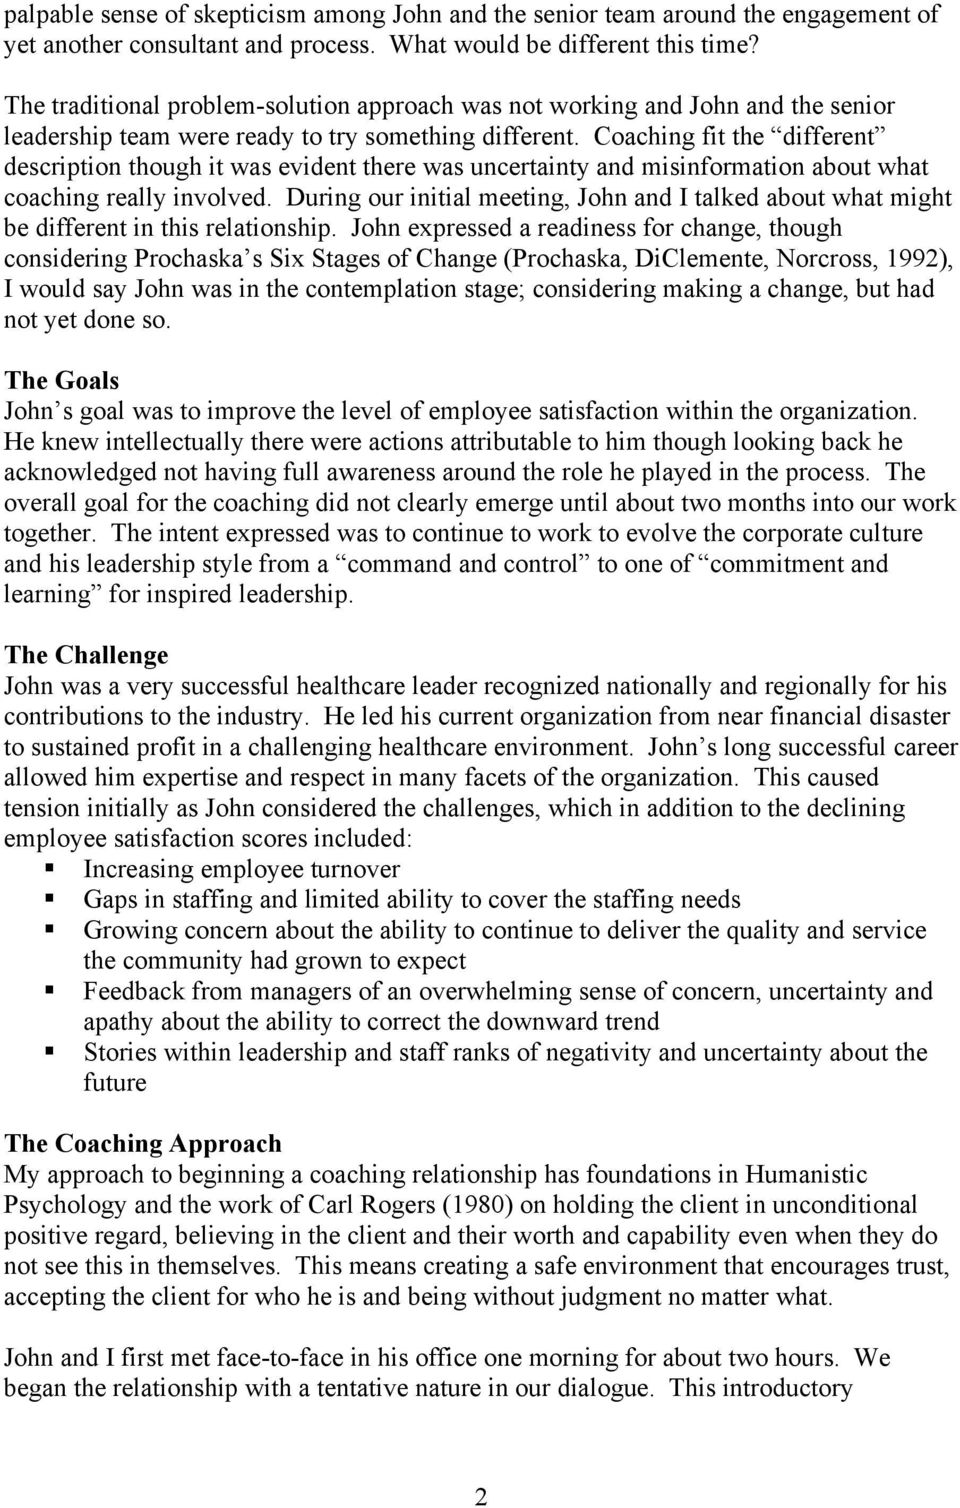 Coaching fit the different description though it was evident there was uncertainty and misinformation about what coaching really involved.